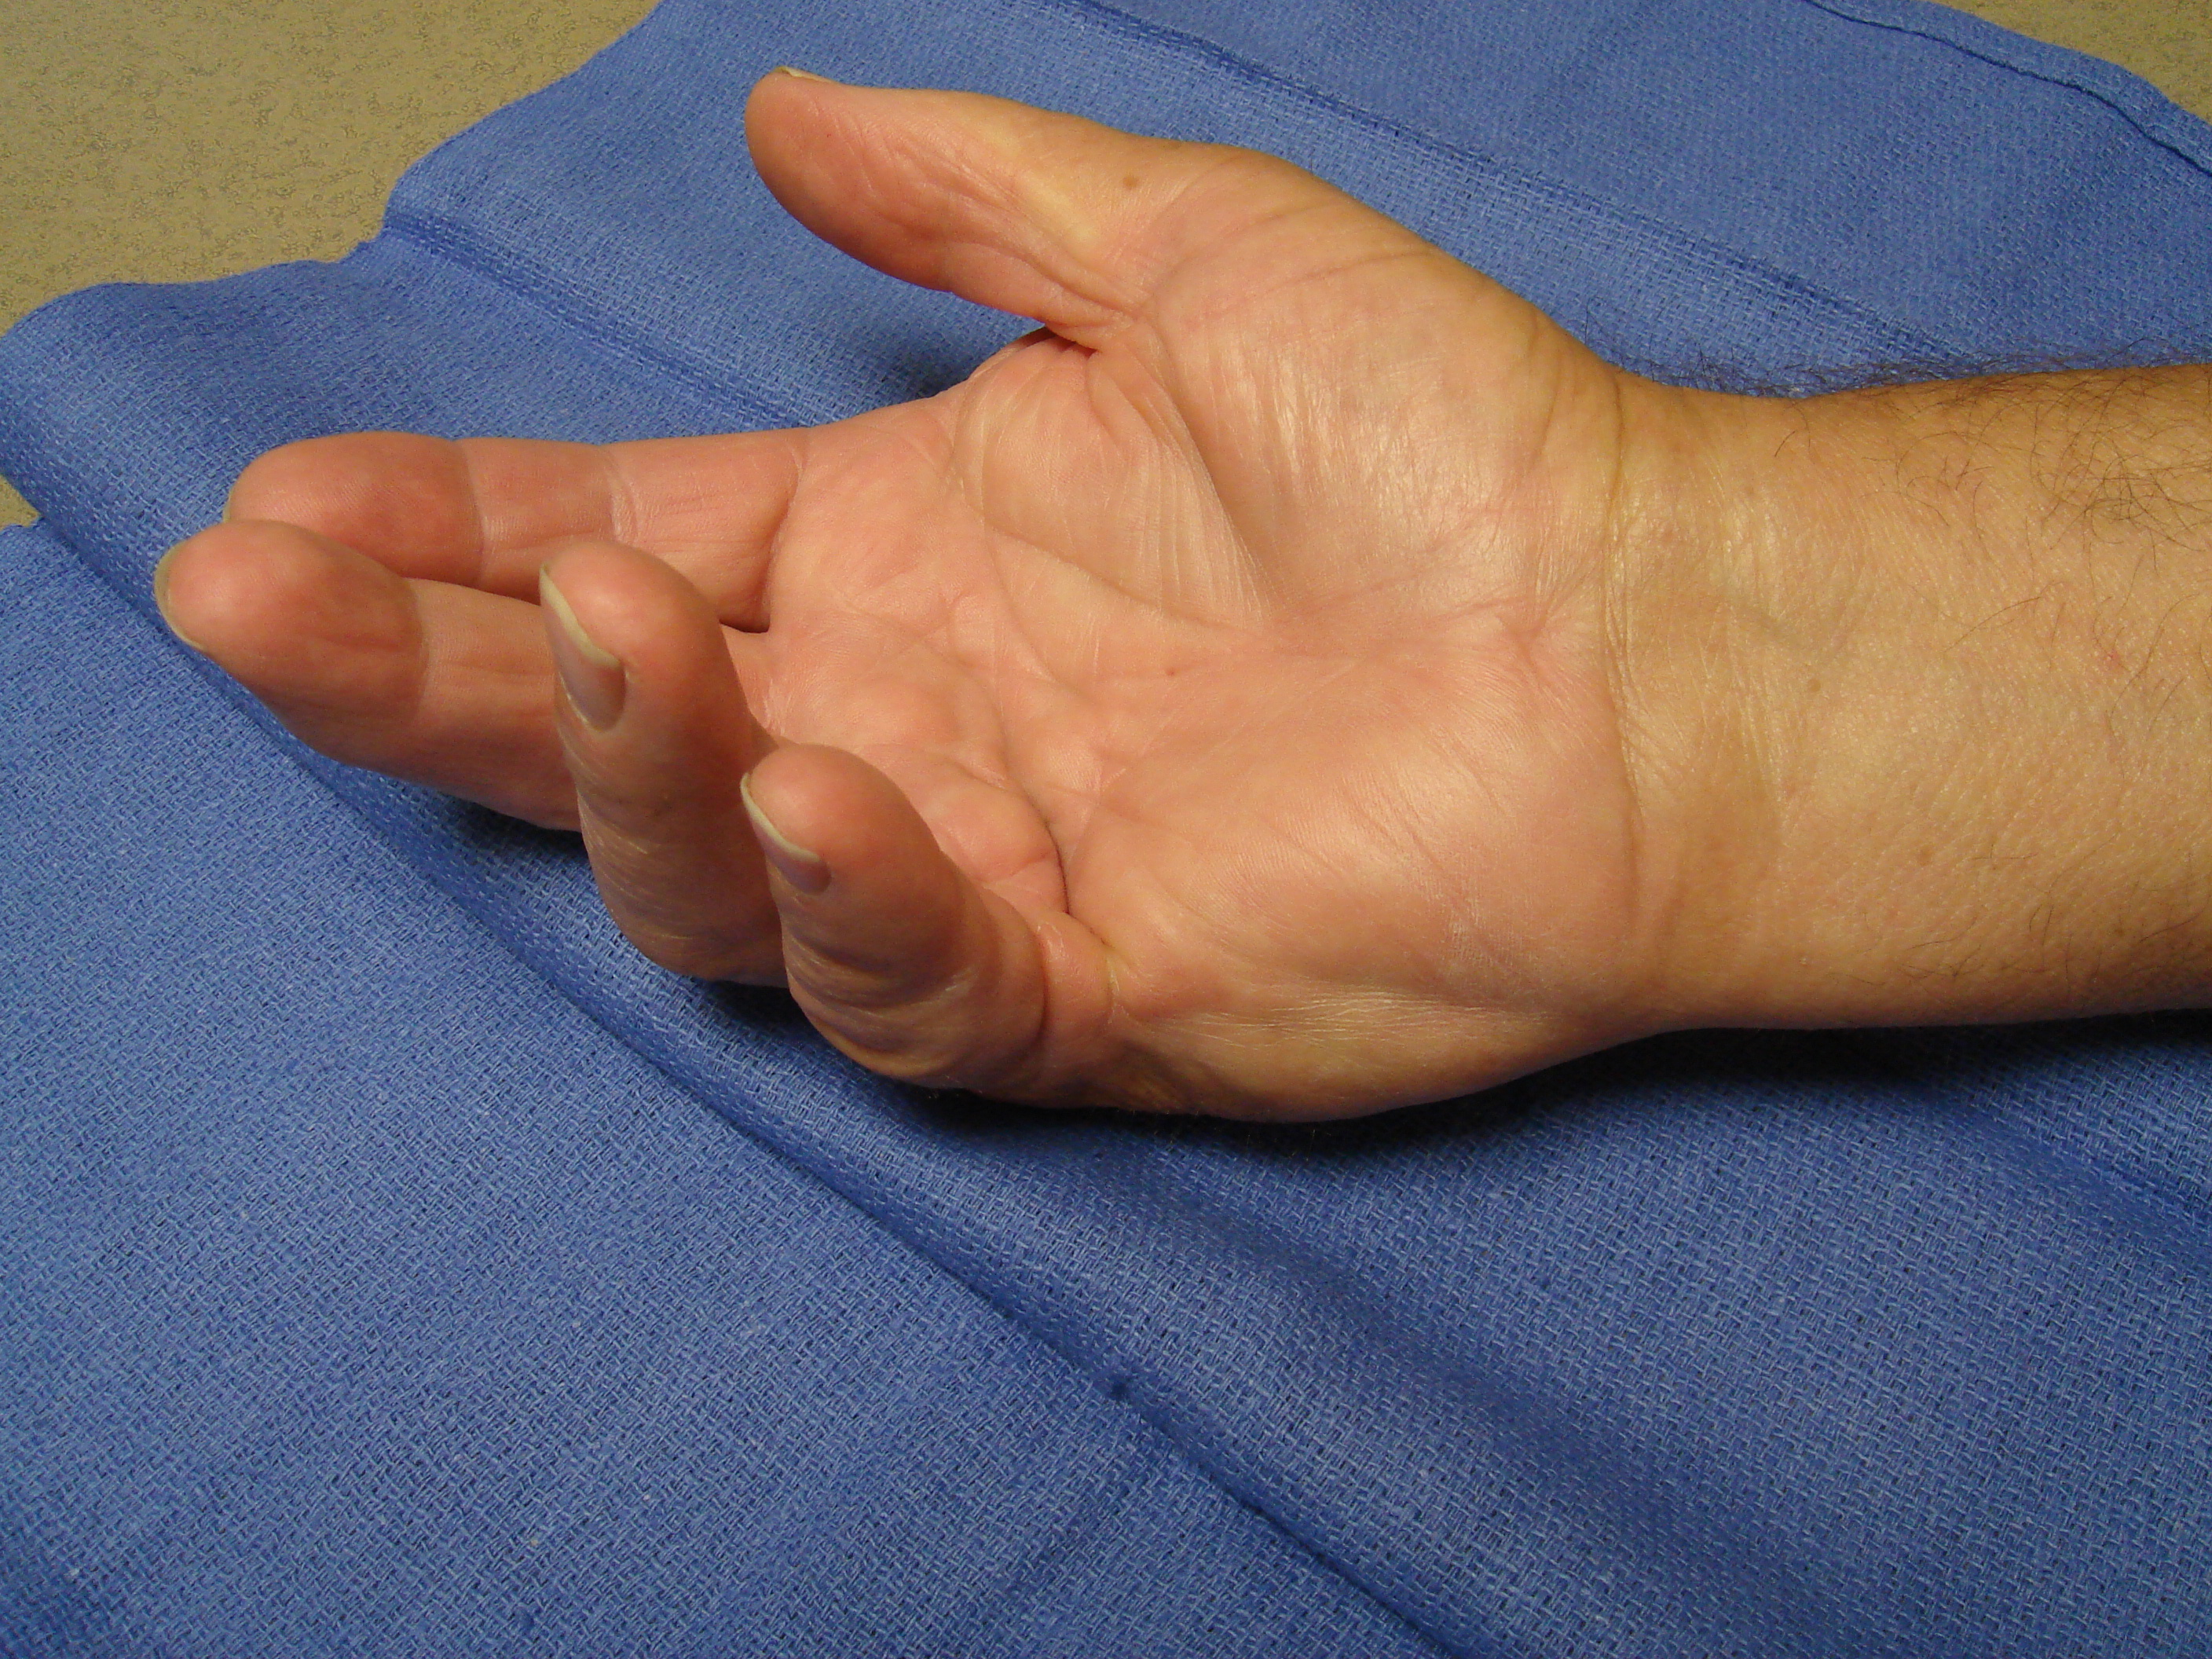 Figure 5a. The right hand of a 70-year-old man with significant, dysfunctional MP joint contractures of the ring and little fingers. He also had contractures of the contralateral left hand, but treatment was started for his dominant right side.